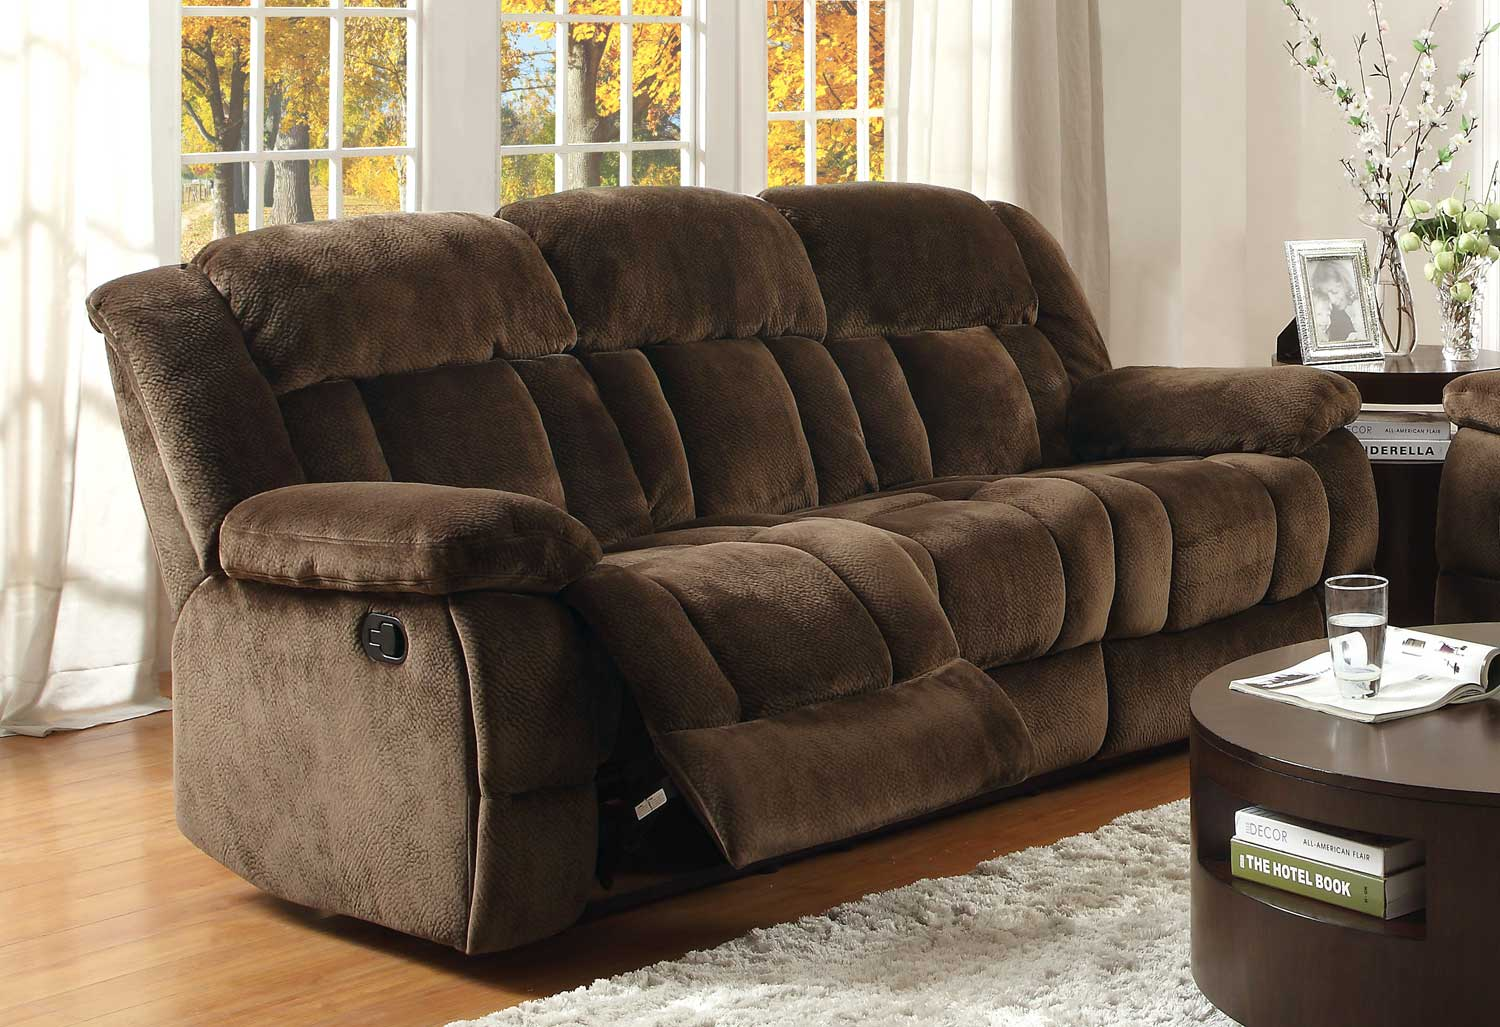 sofas and recliners grey leather sofa in living room homelegance laurelton double reclining chocolate